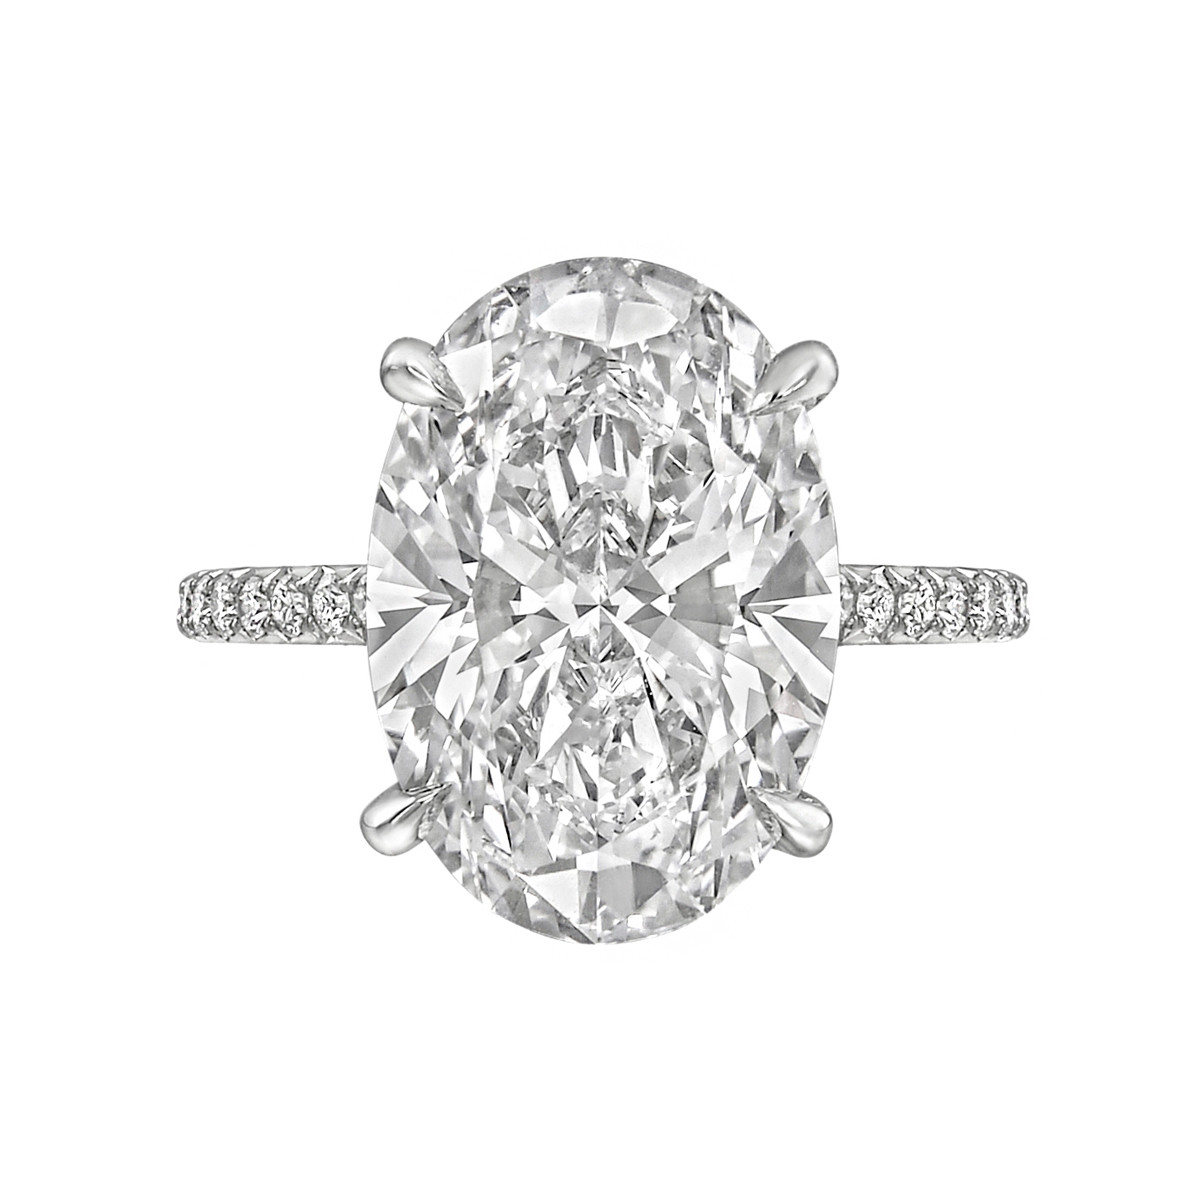 6.21ct Exceptional Type IIA Oval-Cut Diamond Ring